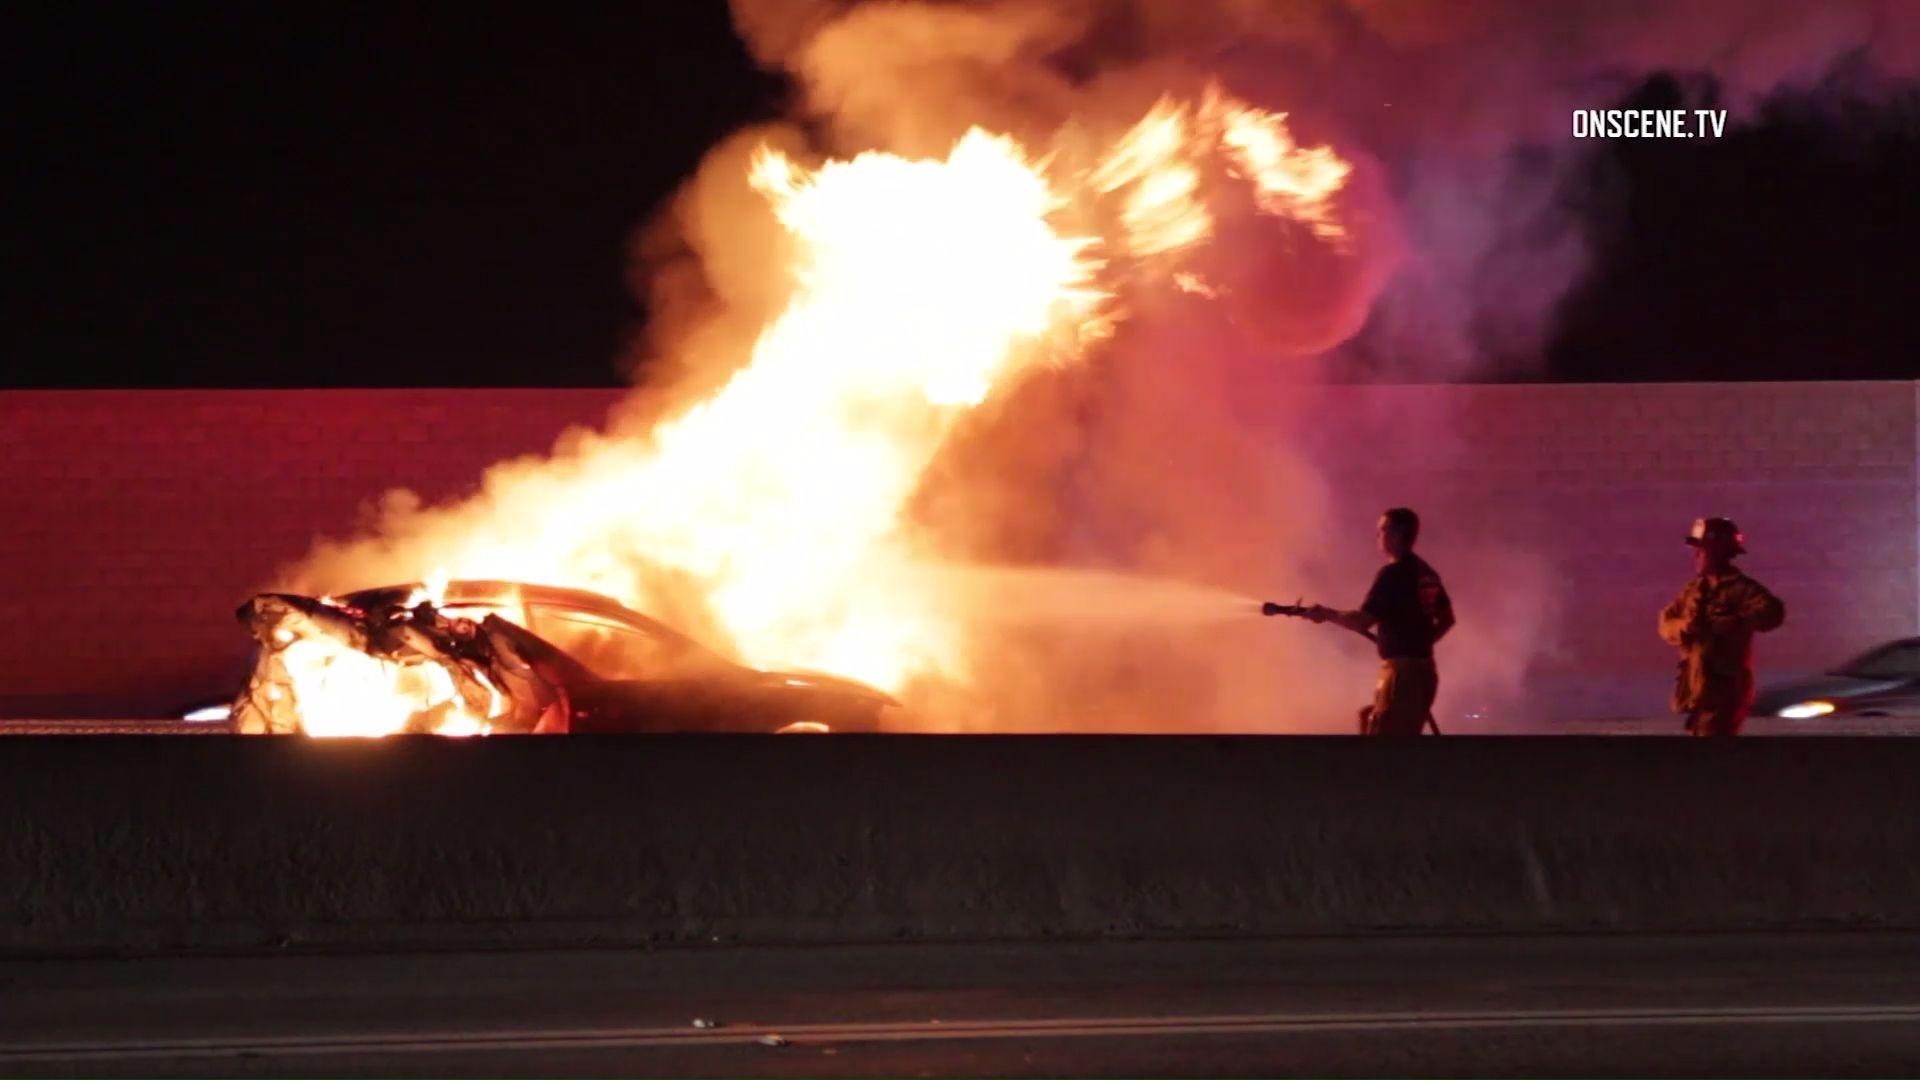 LAPD Officer Arrested In Fiery 605 Pileup That Killed 3